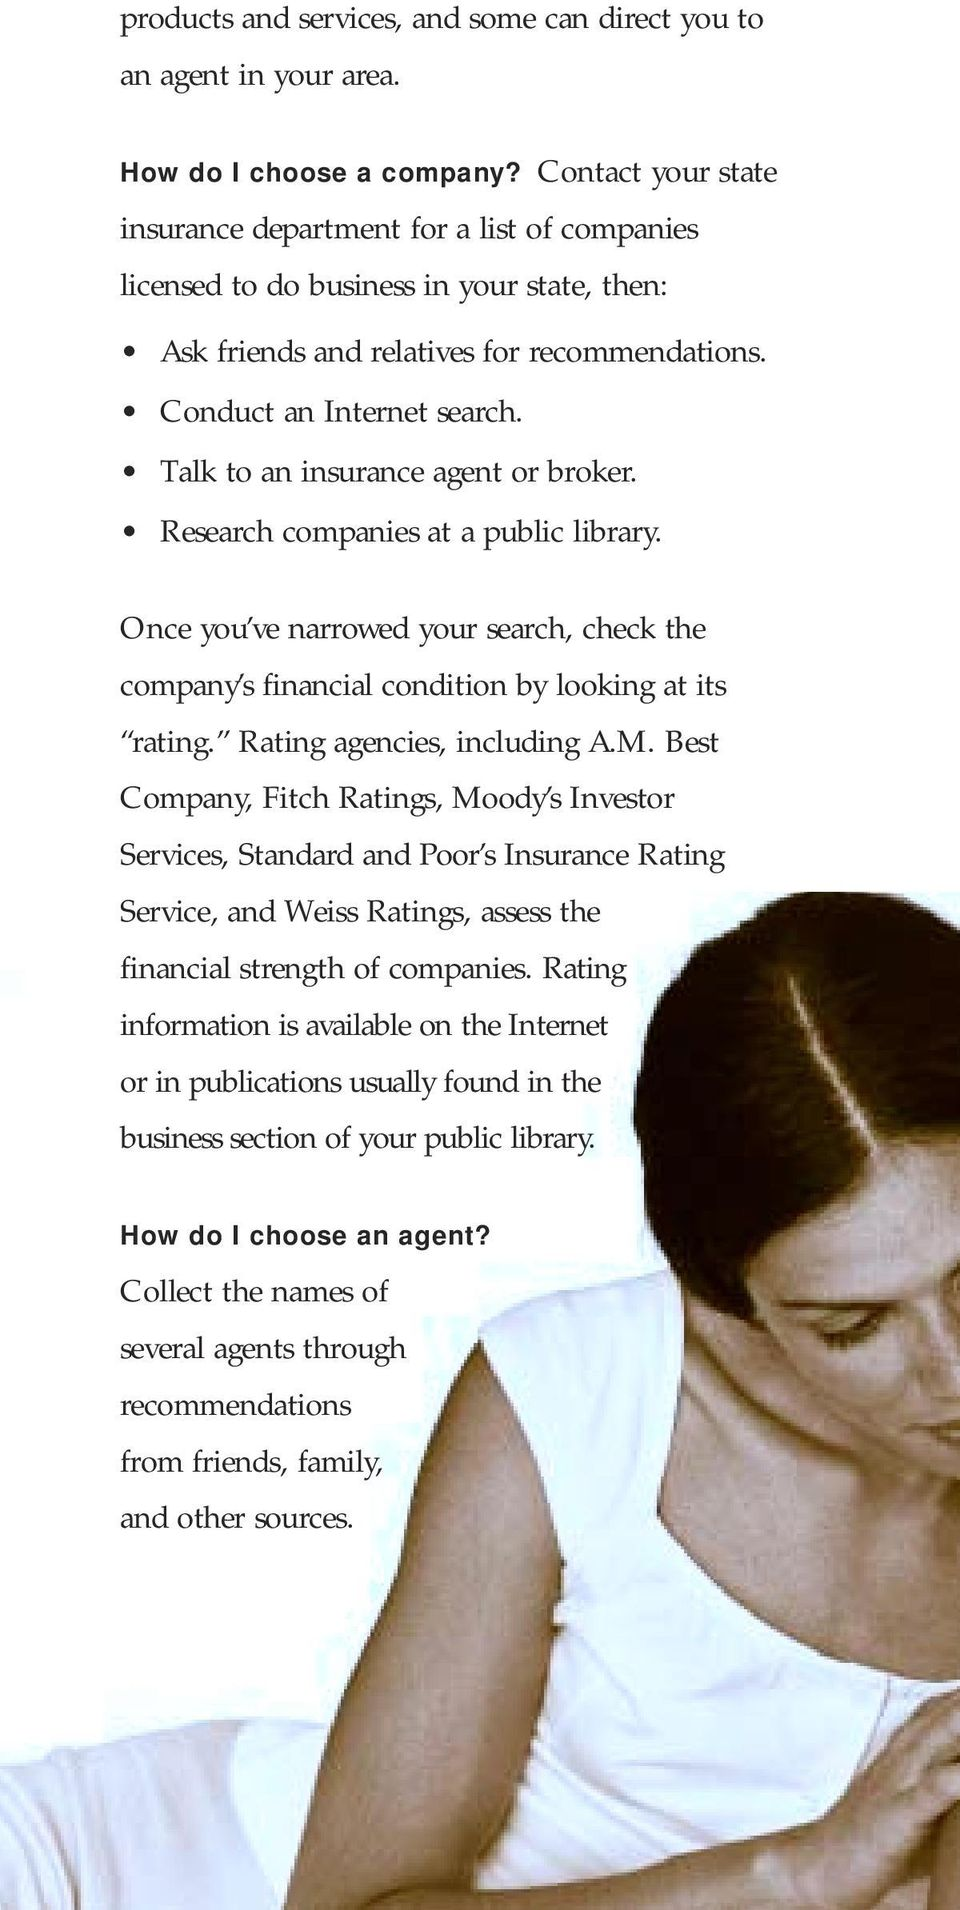 Talk to an insurance agent or broker. Research companies at a public library. Once you ve narrowed your search, check the company s financial condition by looking at its rating.